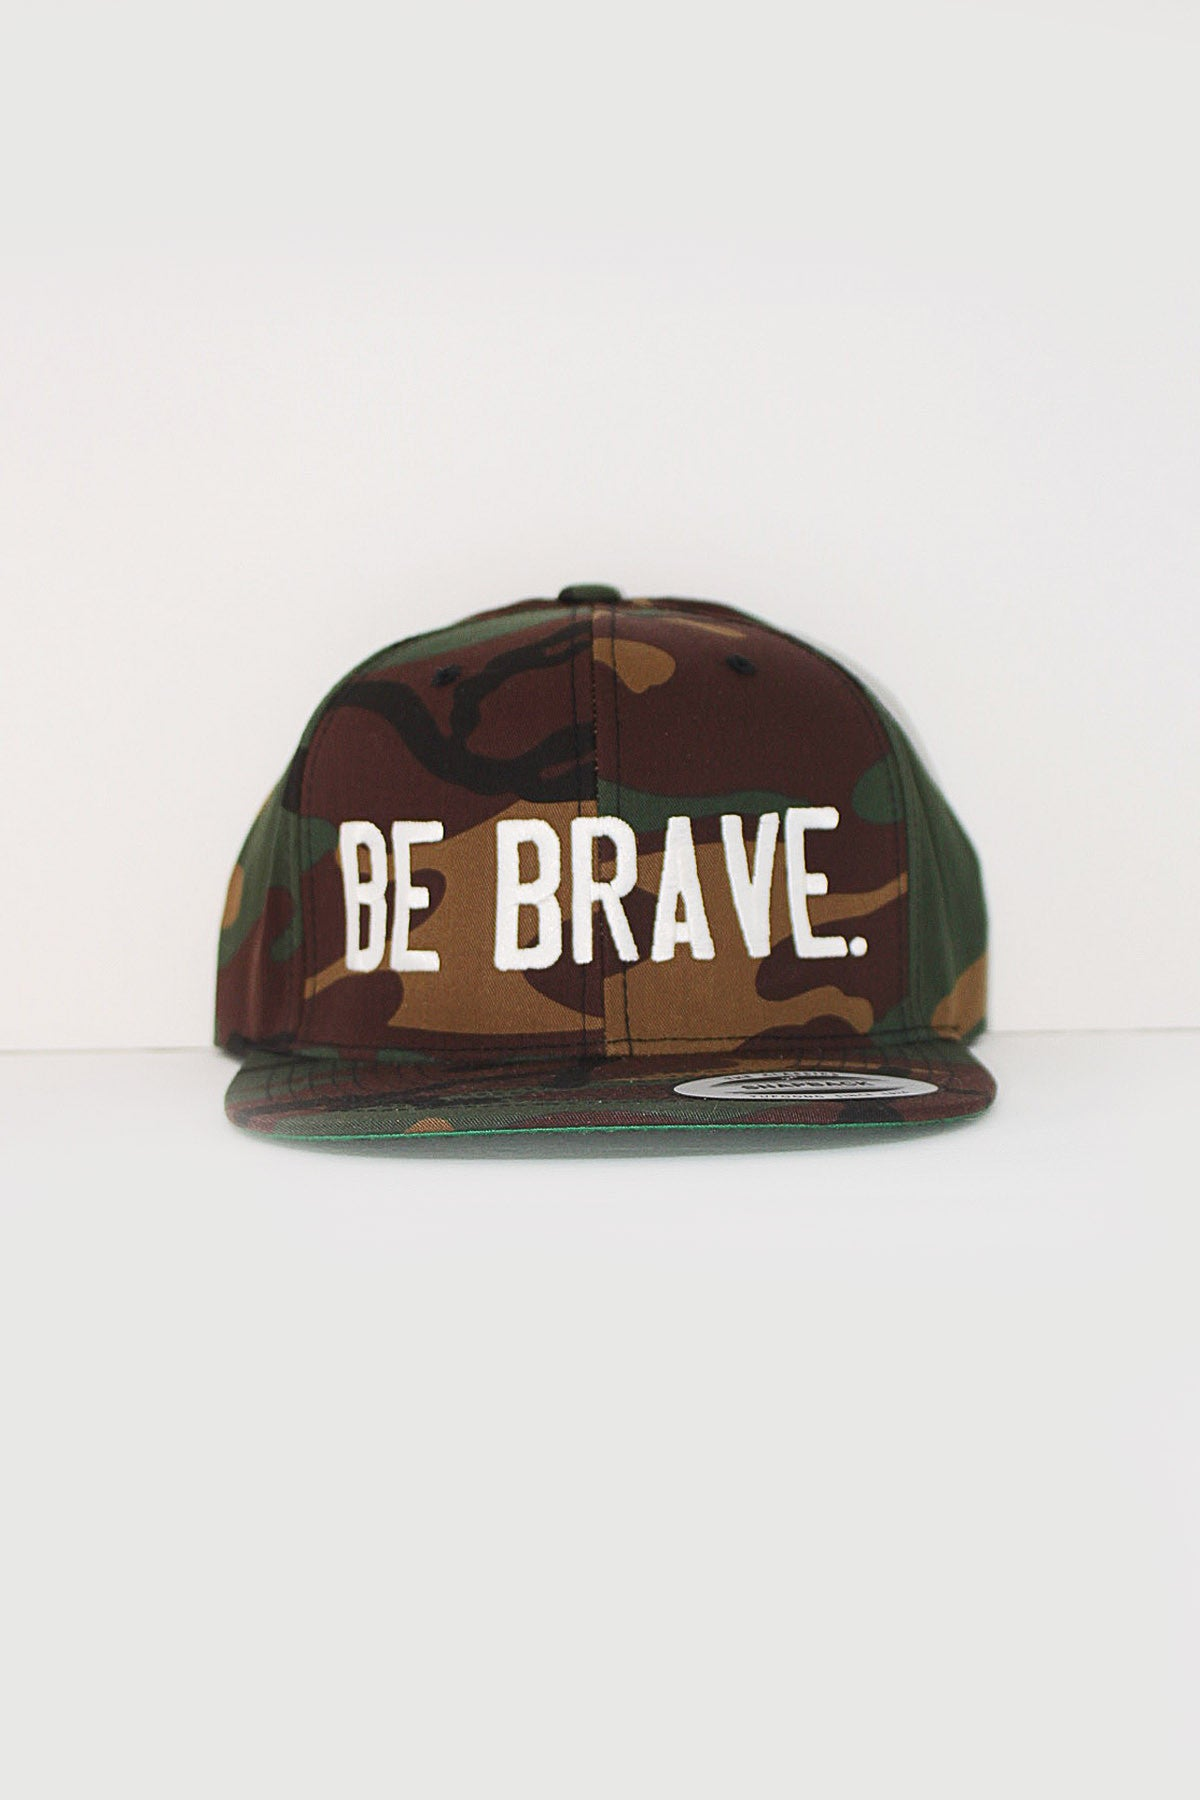 BE BRAVE. Embroidered Snapback Hat in camo